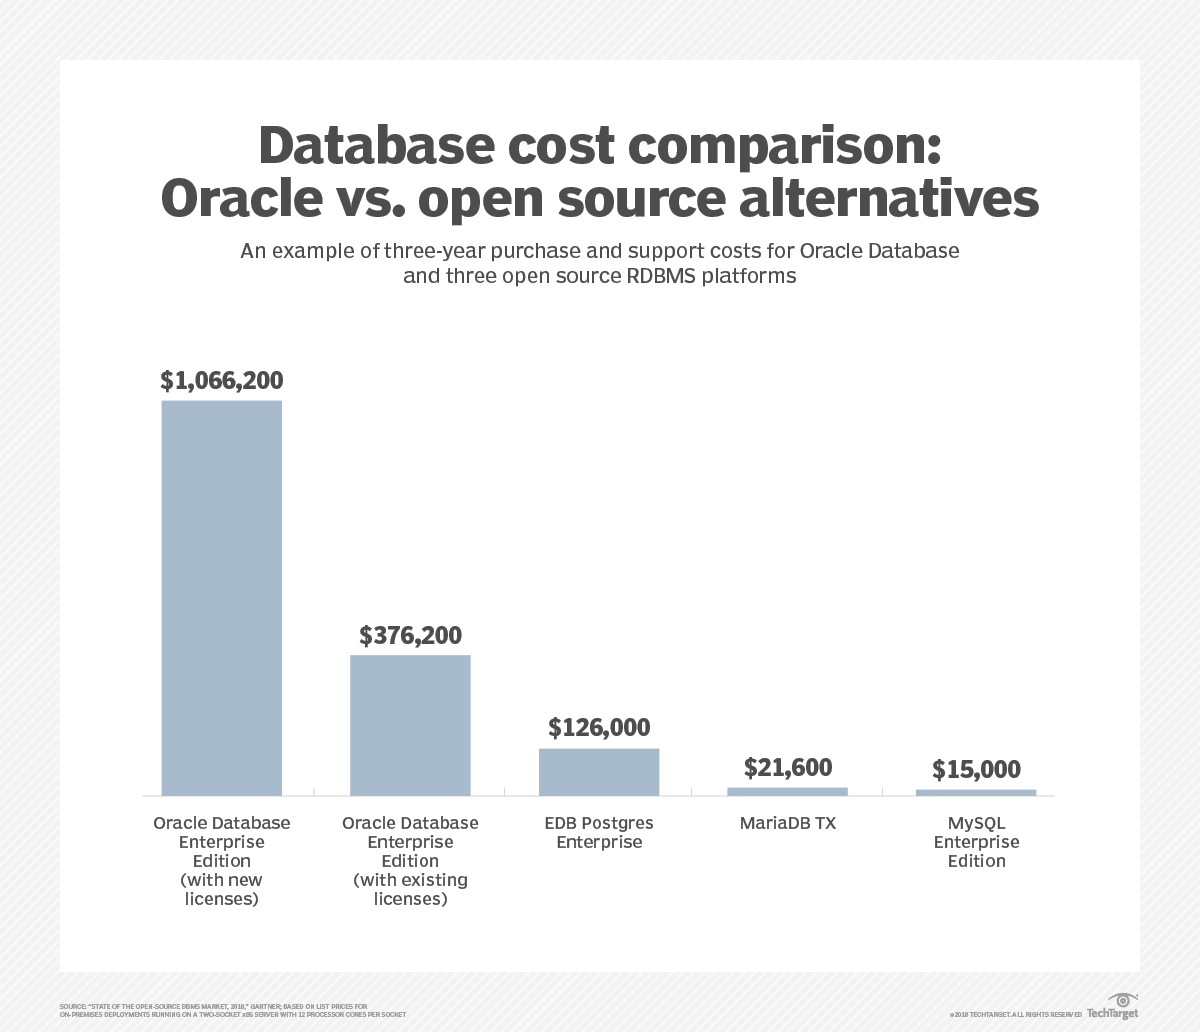 Open source RDBMS uses spurred by lower costs, cloud options